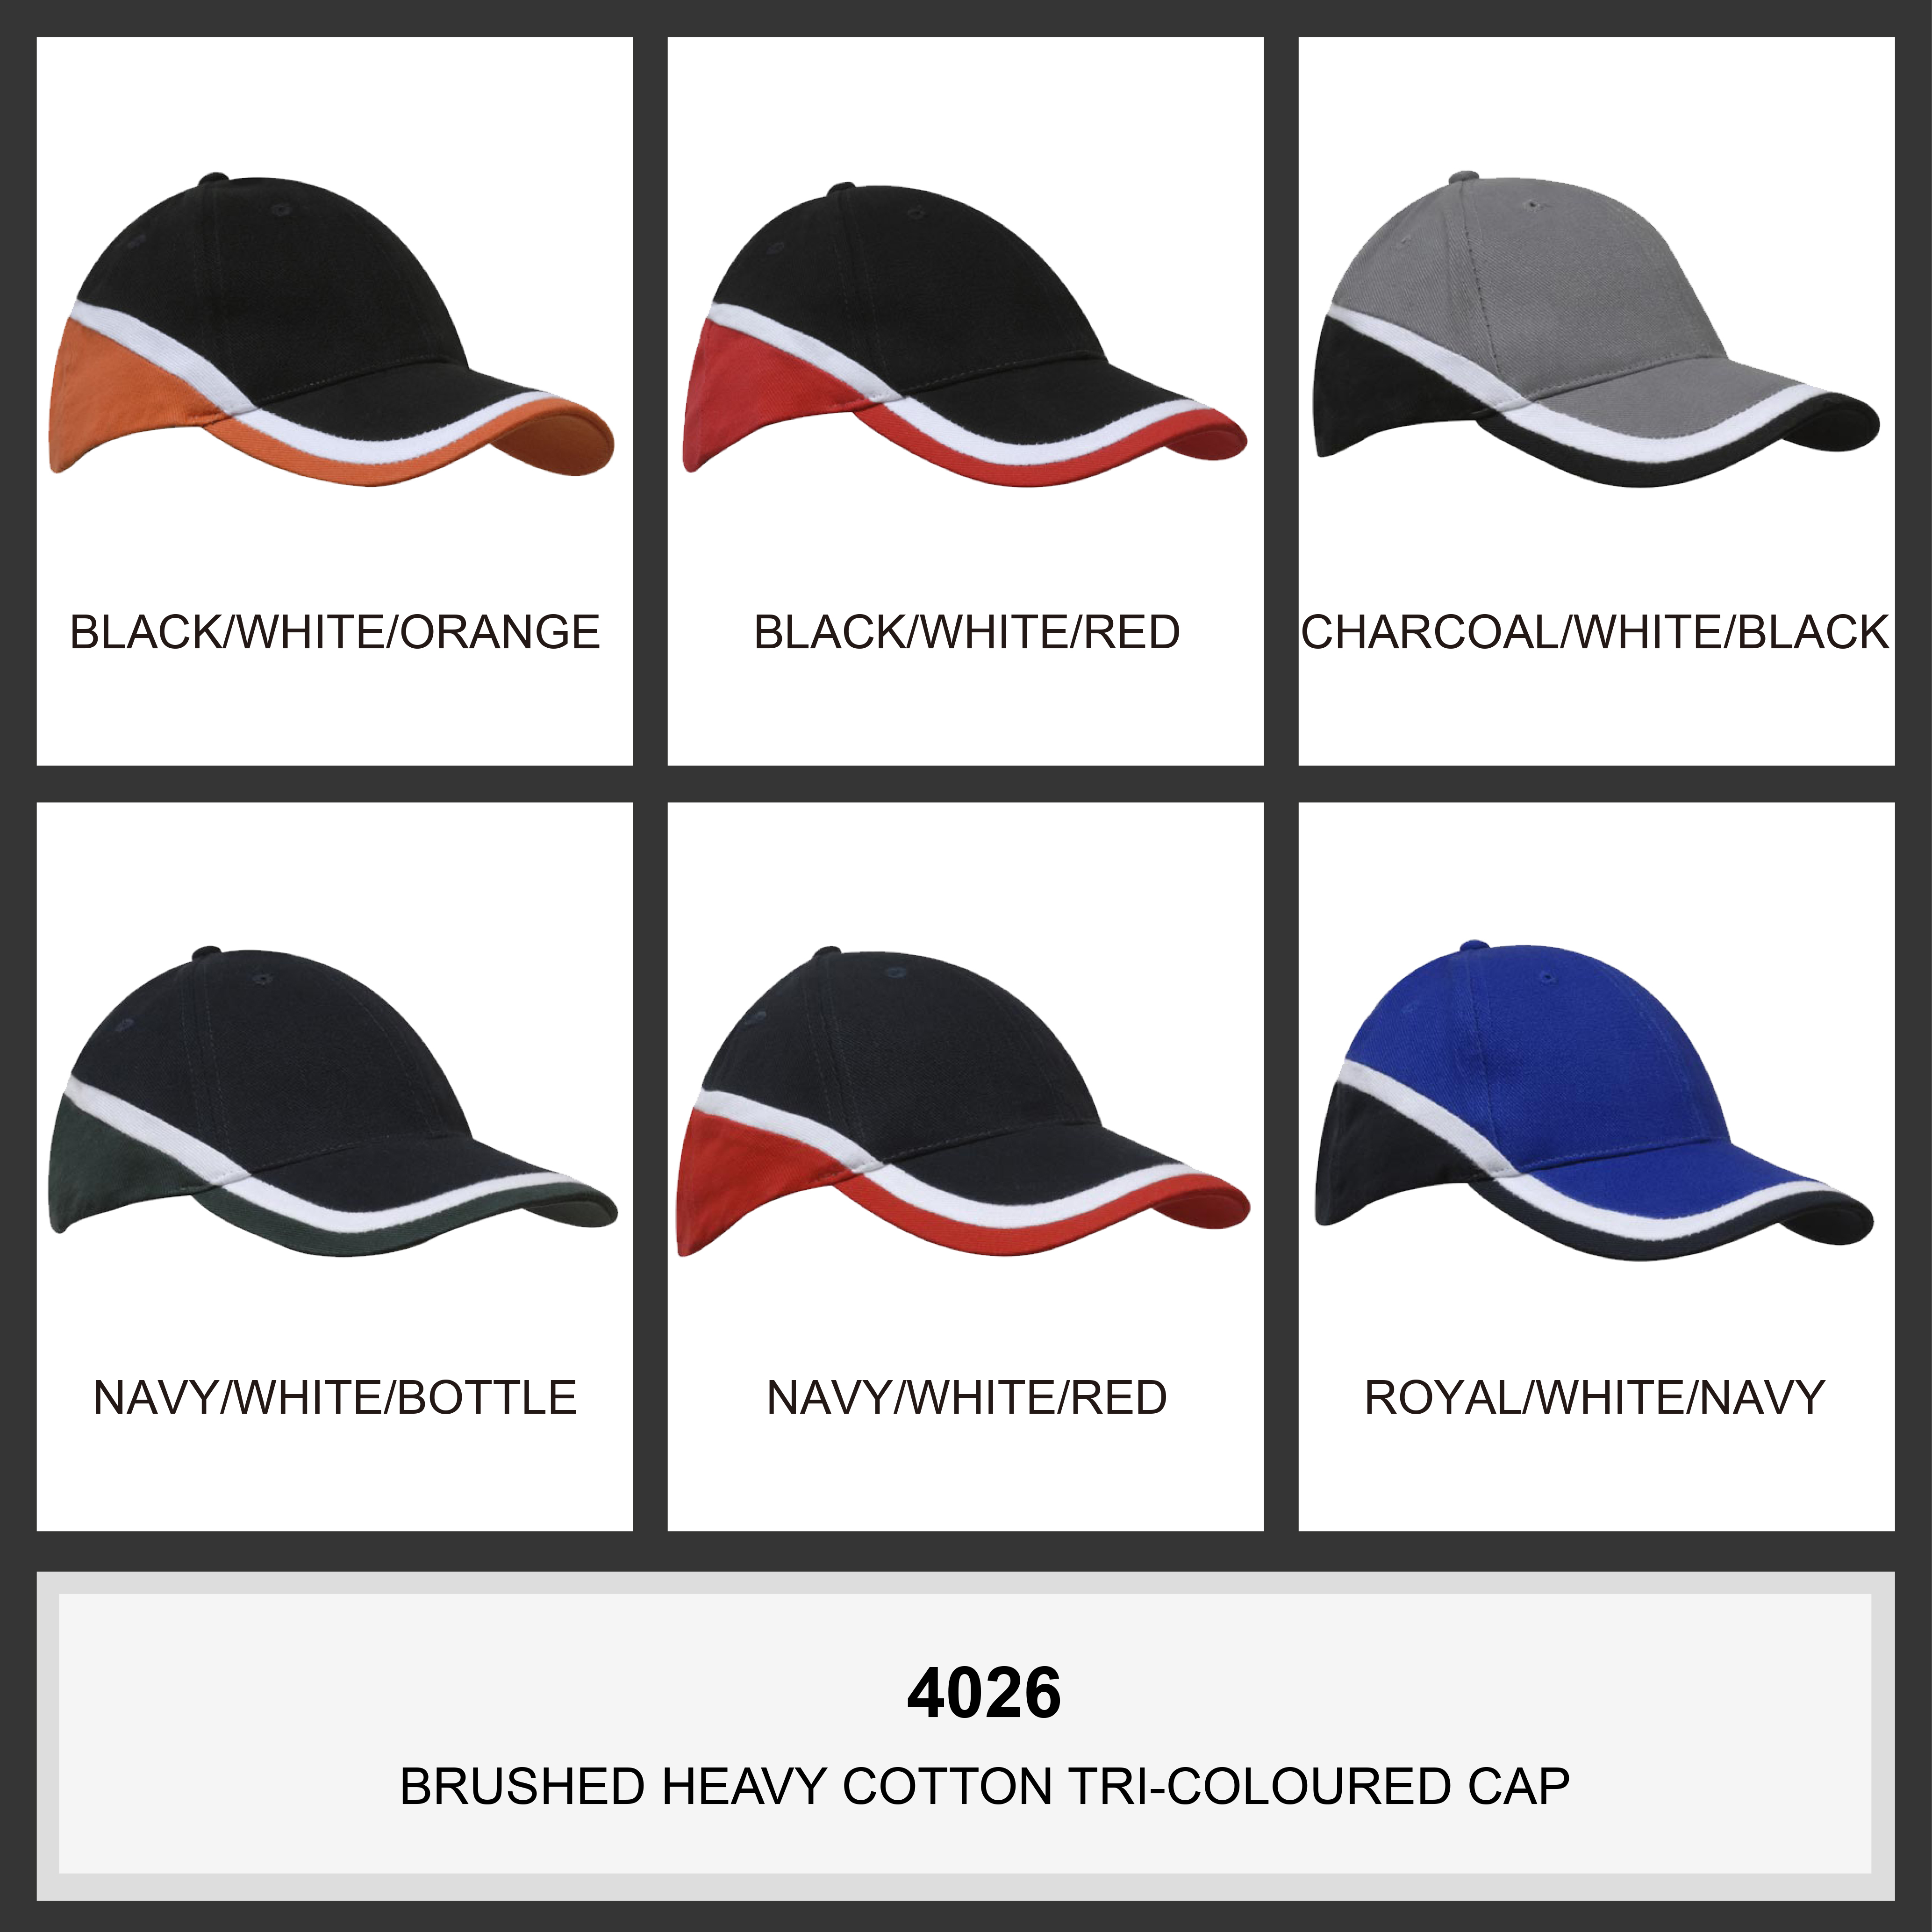 Brushed Heavy Cotton Tri-Coloured Cap (4026) 2     Promotion Wear